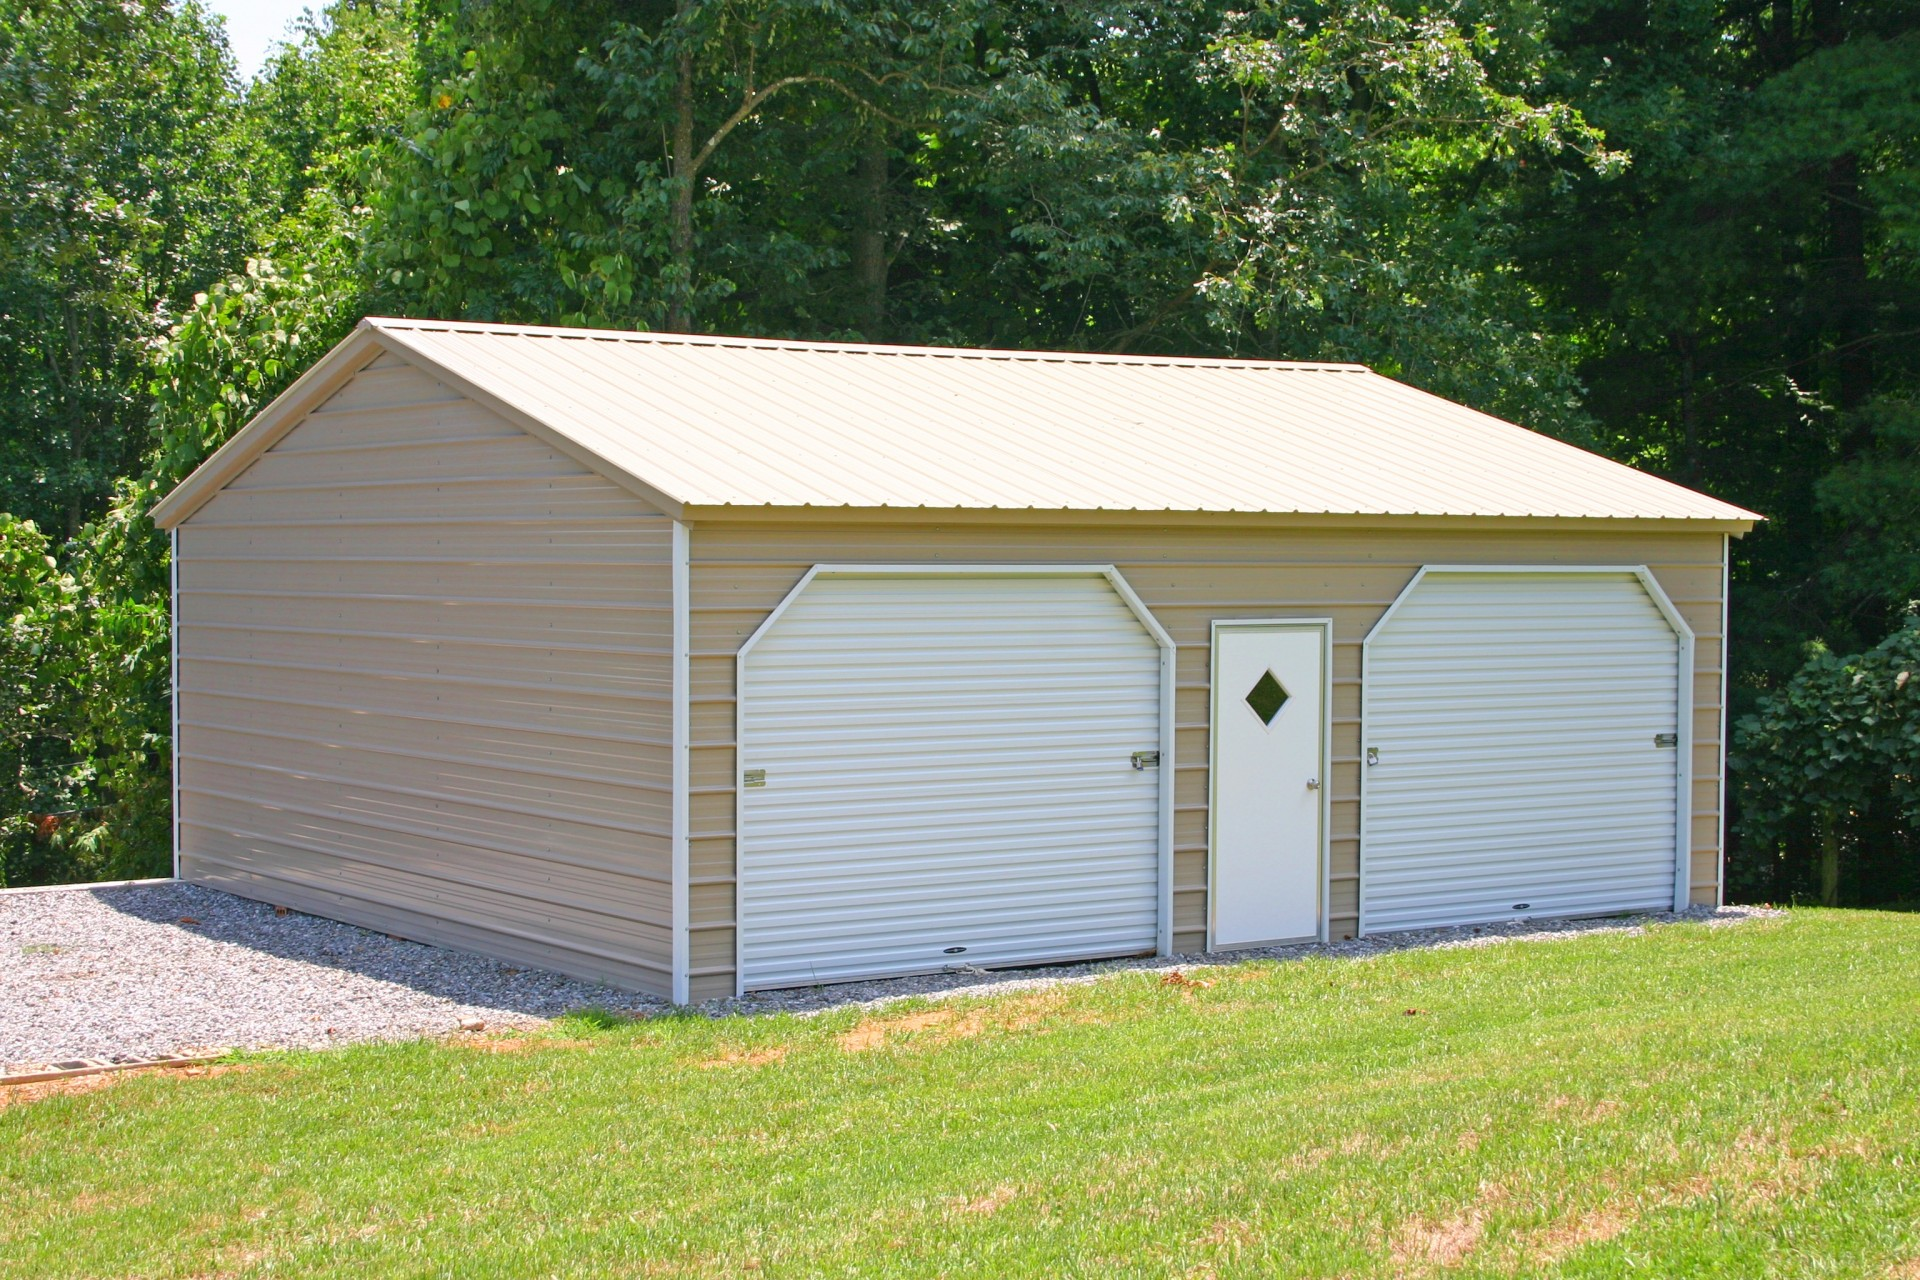 Carports florida fl metal garages barns rv covers for Sheds brooksville fl